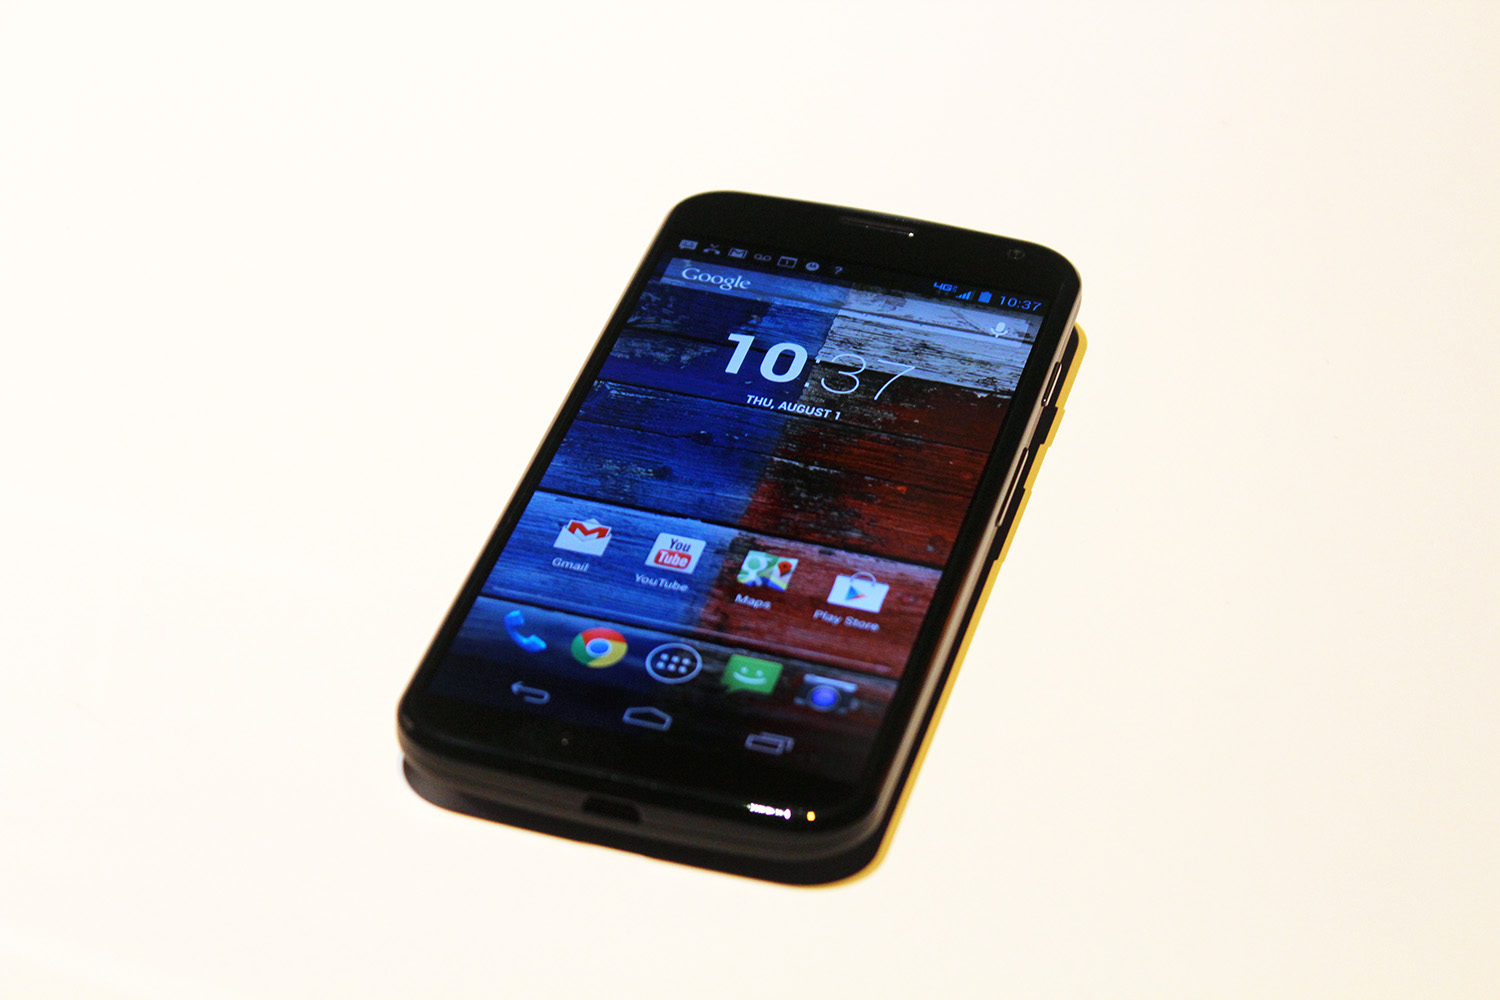 IMG 3075 Hands on with the Moto X: You wont lust after it, but its a solid smartphone